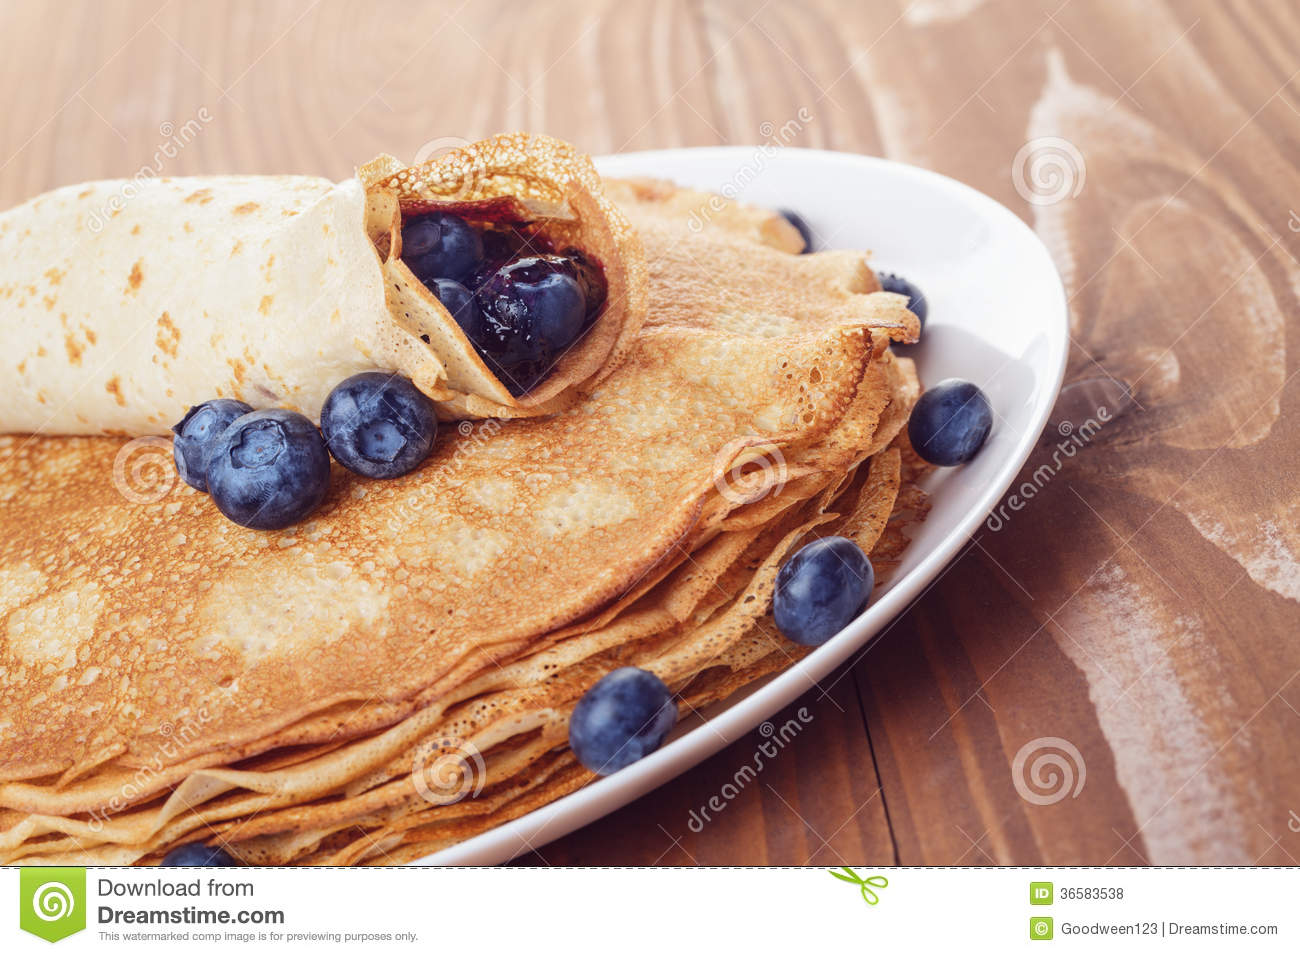 Homemade blinis or crepes with blueberries and jam toned photo